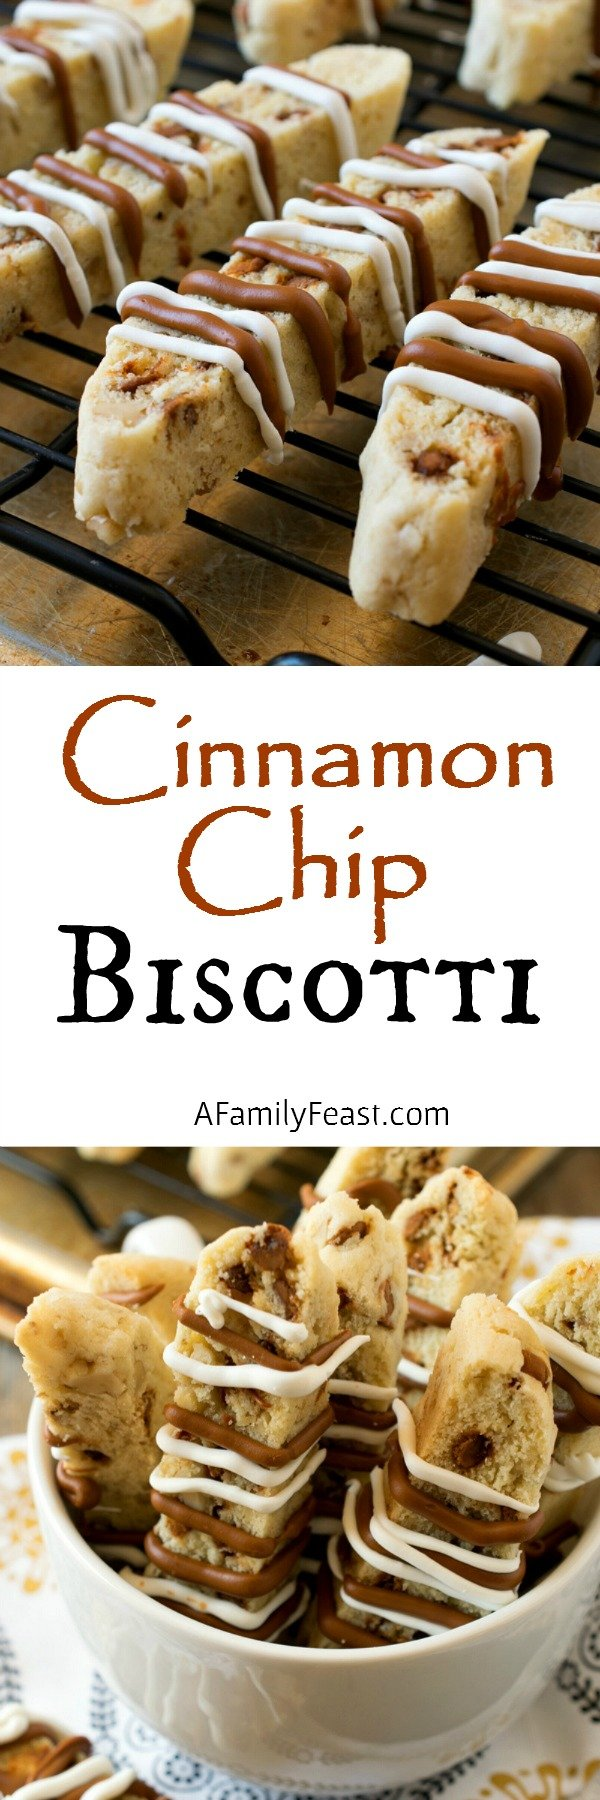 ... biscotti filled with cinnamon chips and walnuts and a white chocolate